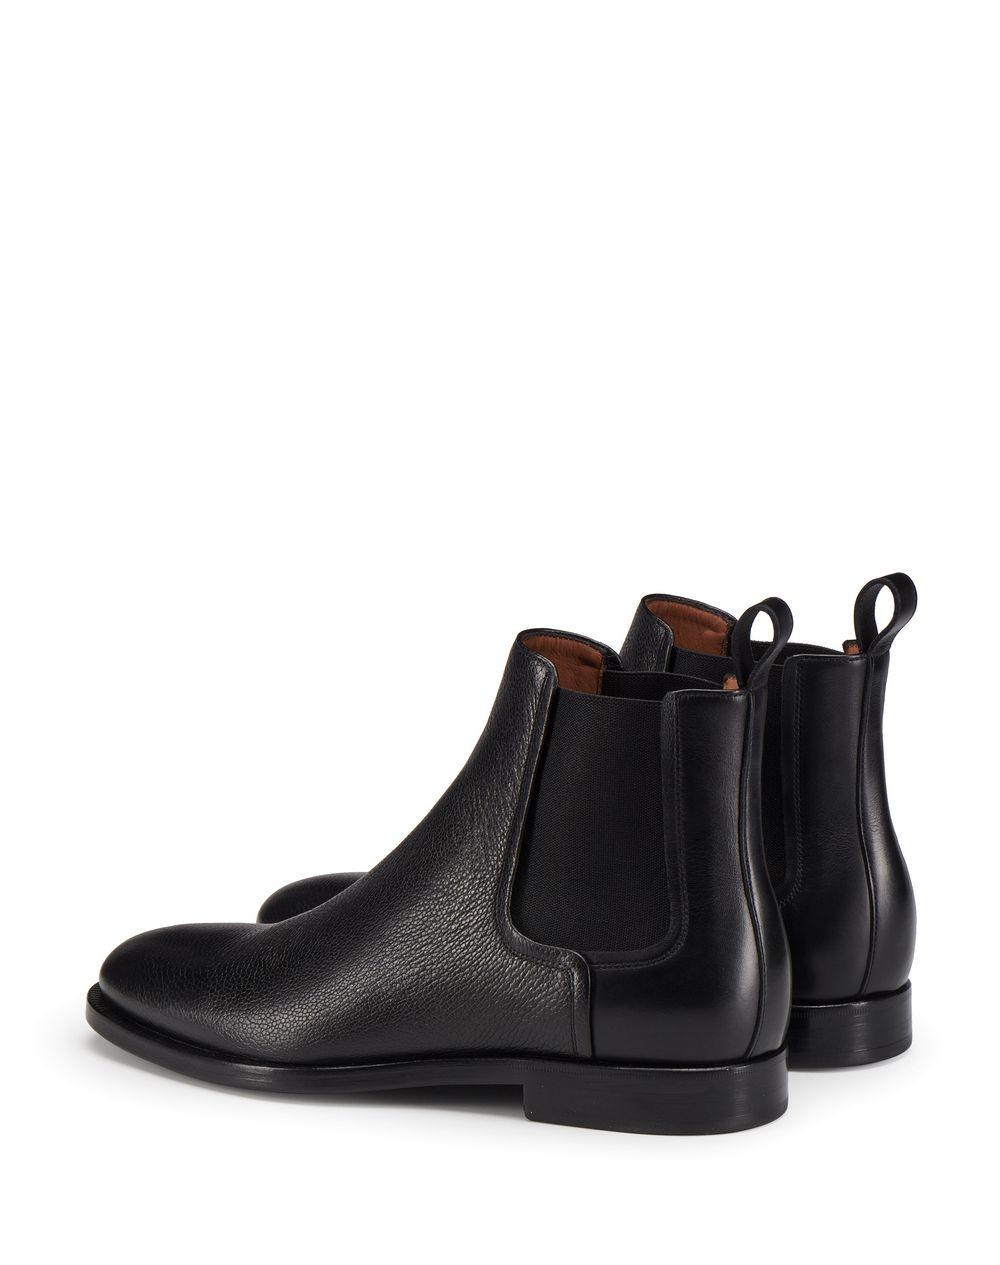 BLACK LEATHER CHELSEA BOOT - Lanvin